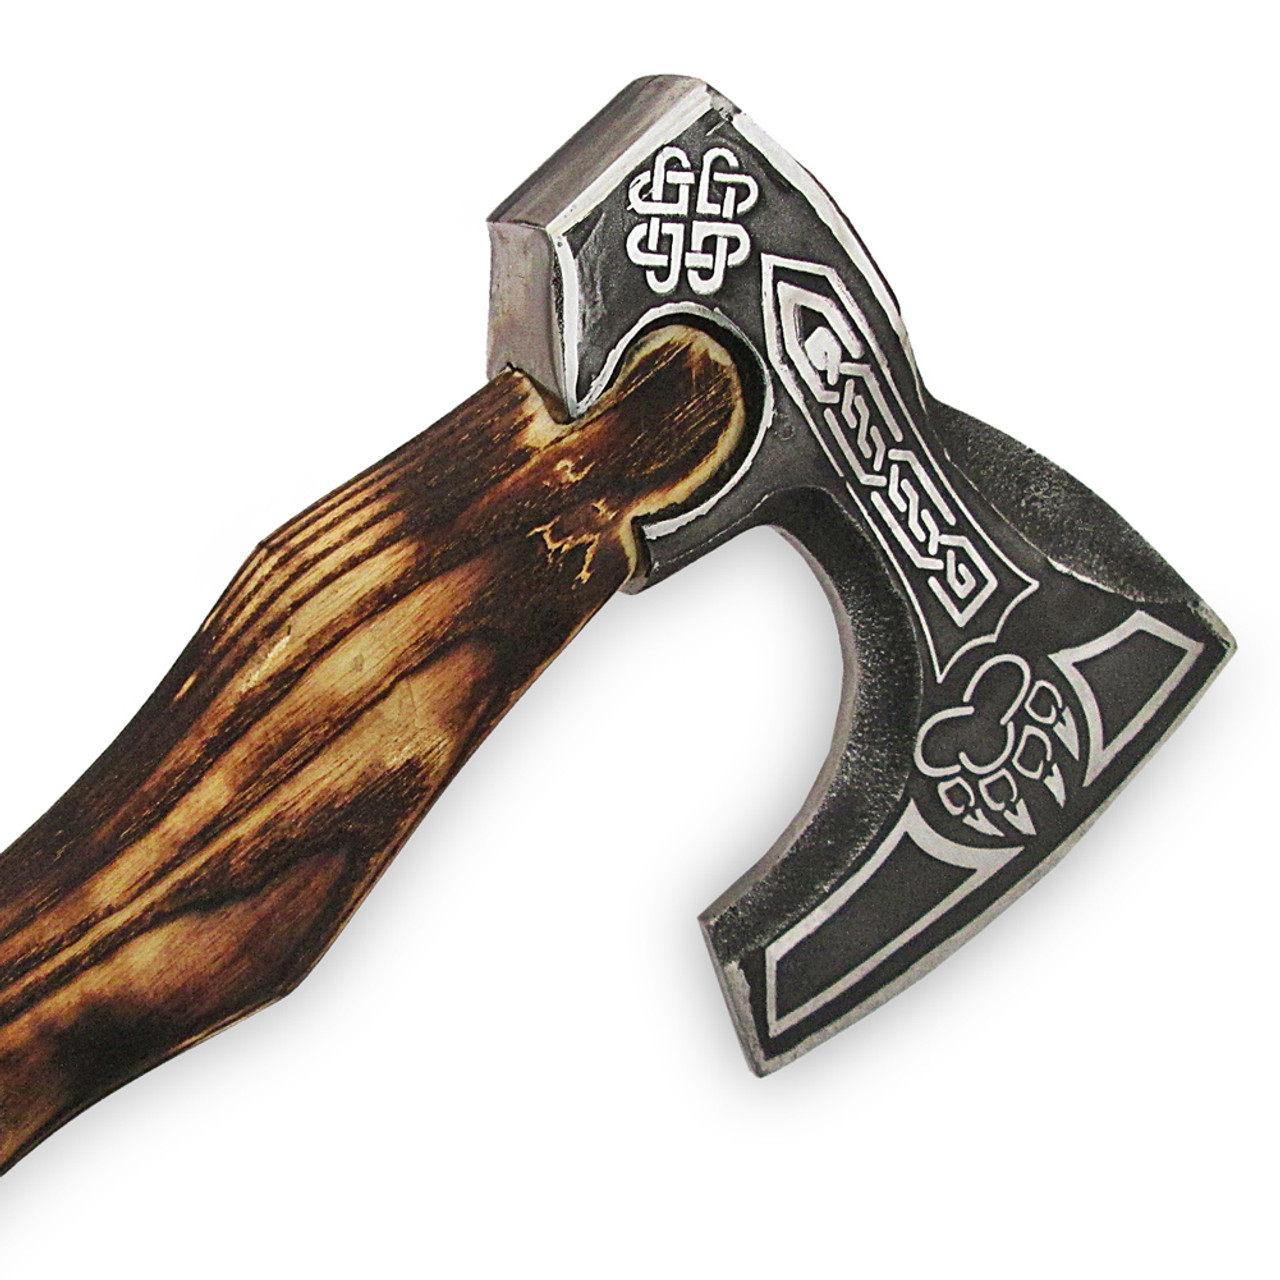 Claw Axe Hand forged Carved Etched Axe